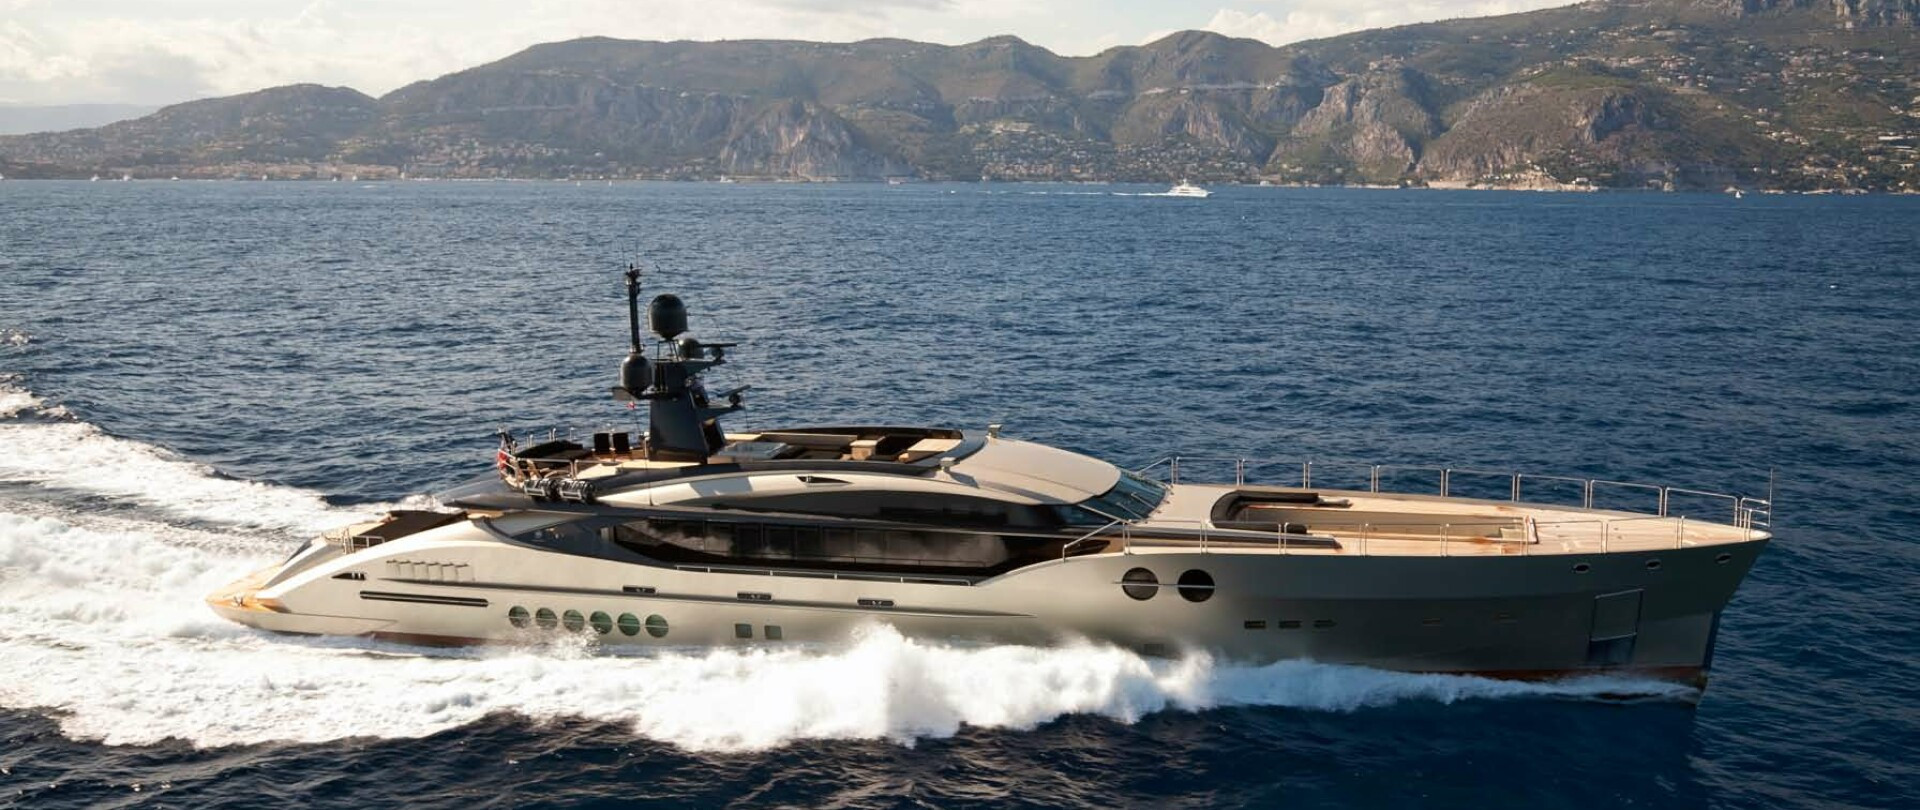 DB9 Yacht for Charter photo 3